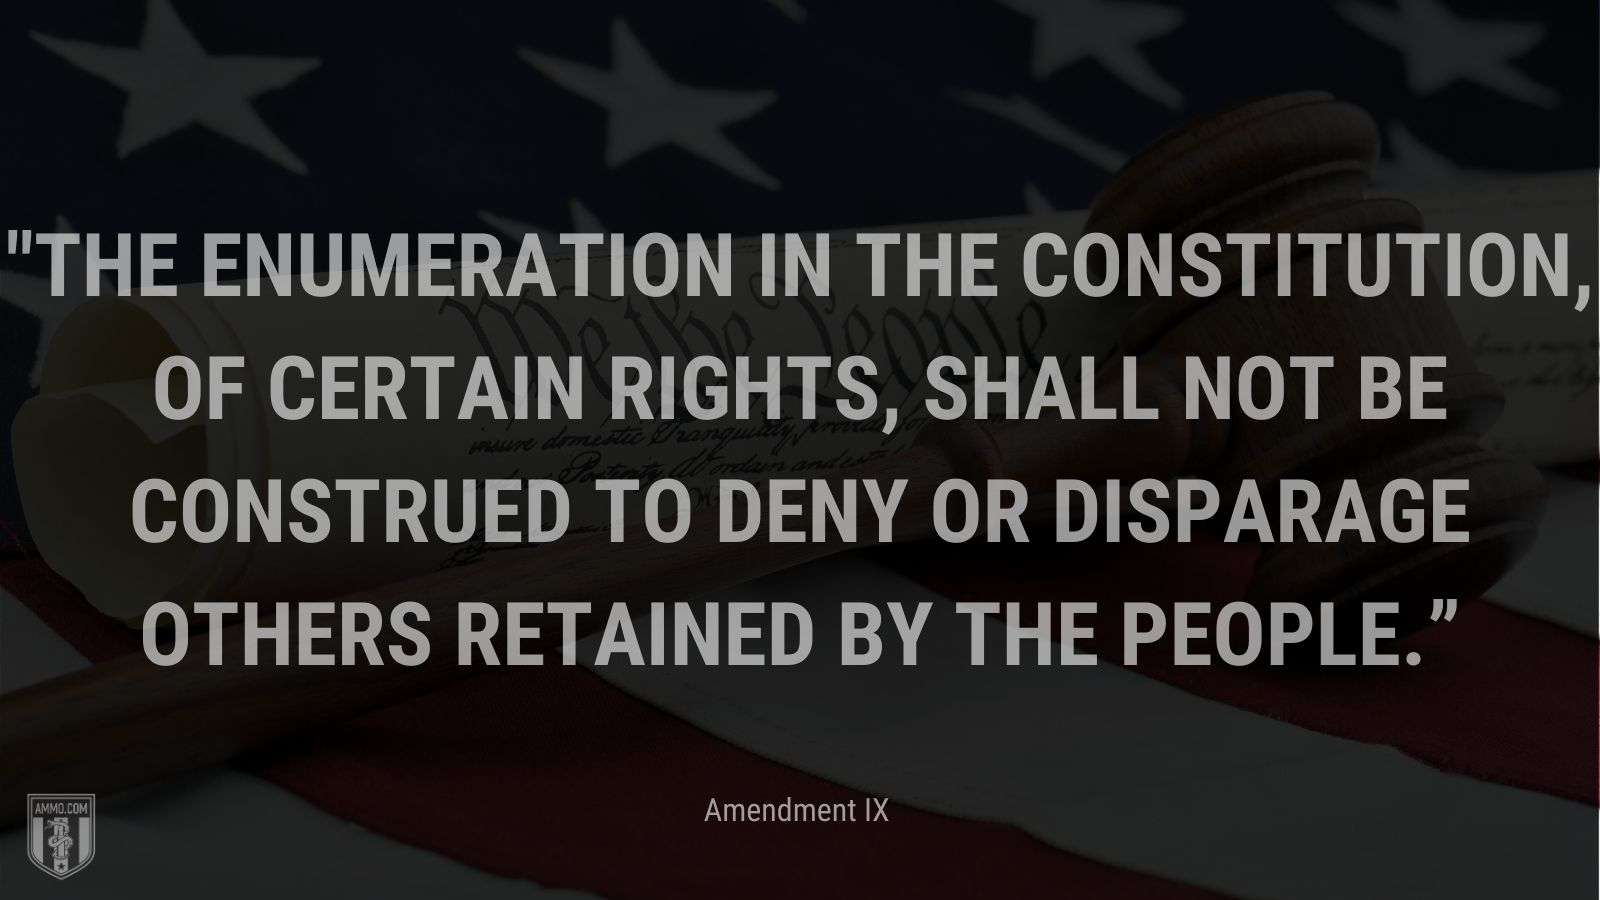 """""""The enumeration in the Constitution, of certain rights, shall not be construed to deny or disparage others retained by the people."""" - Amendment IX"""